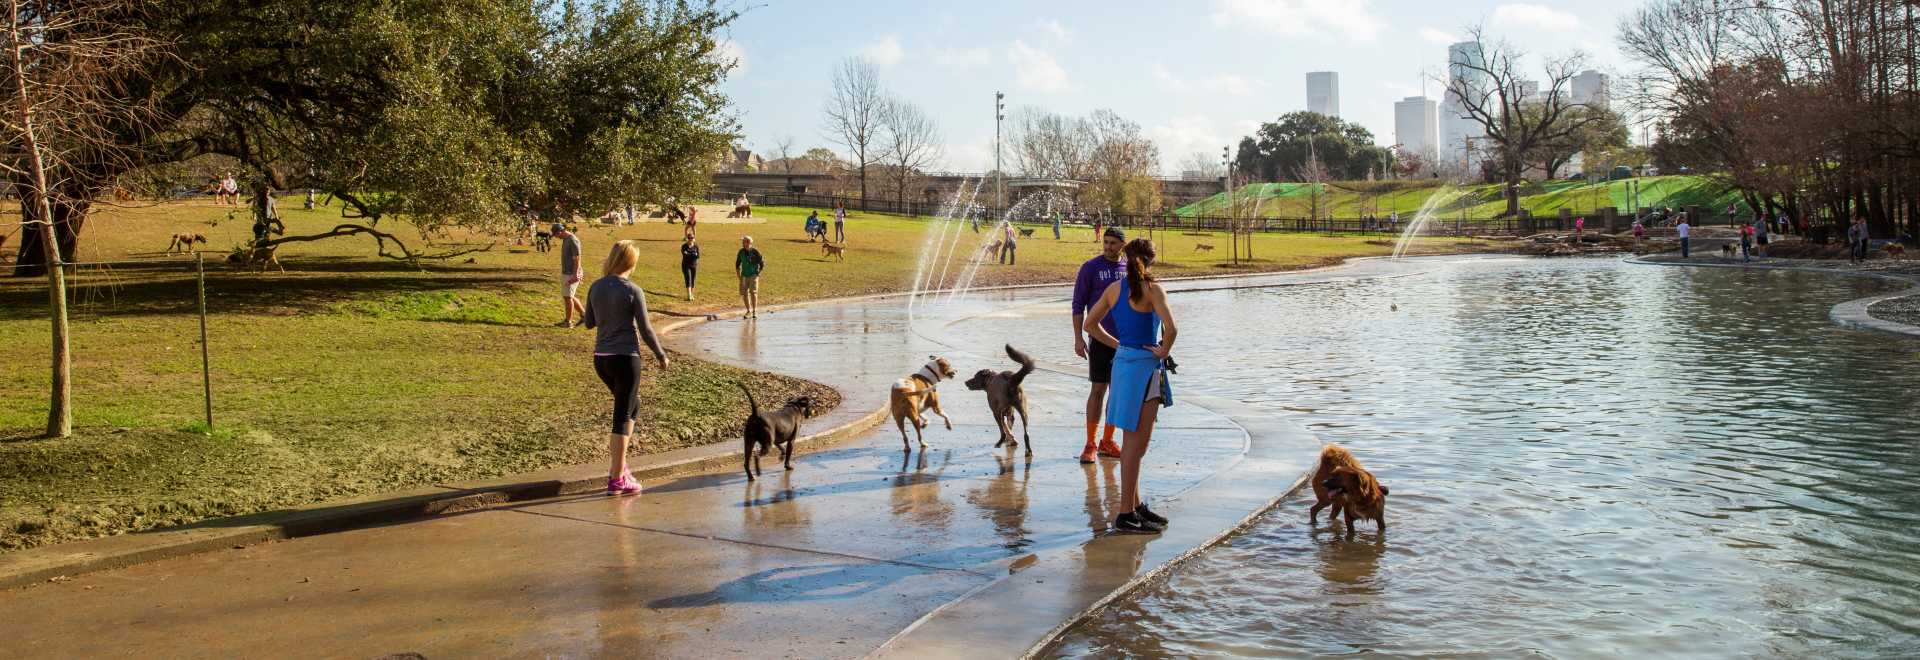 Bear Creek Park Houston Map.Dog Parks In Houston Find Pet Friendly Park Locations Tips